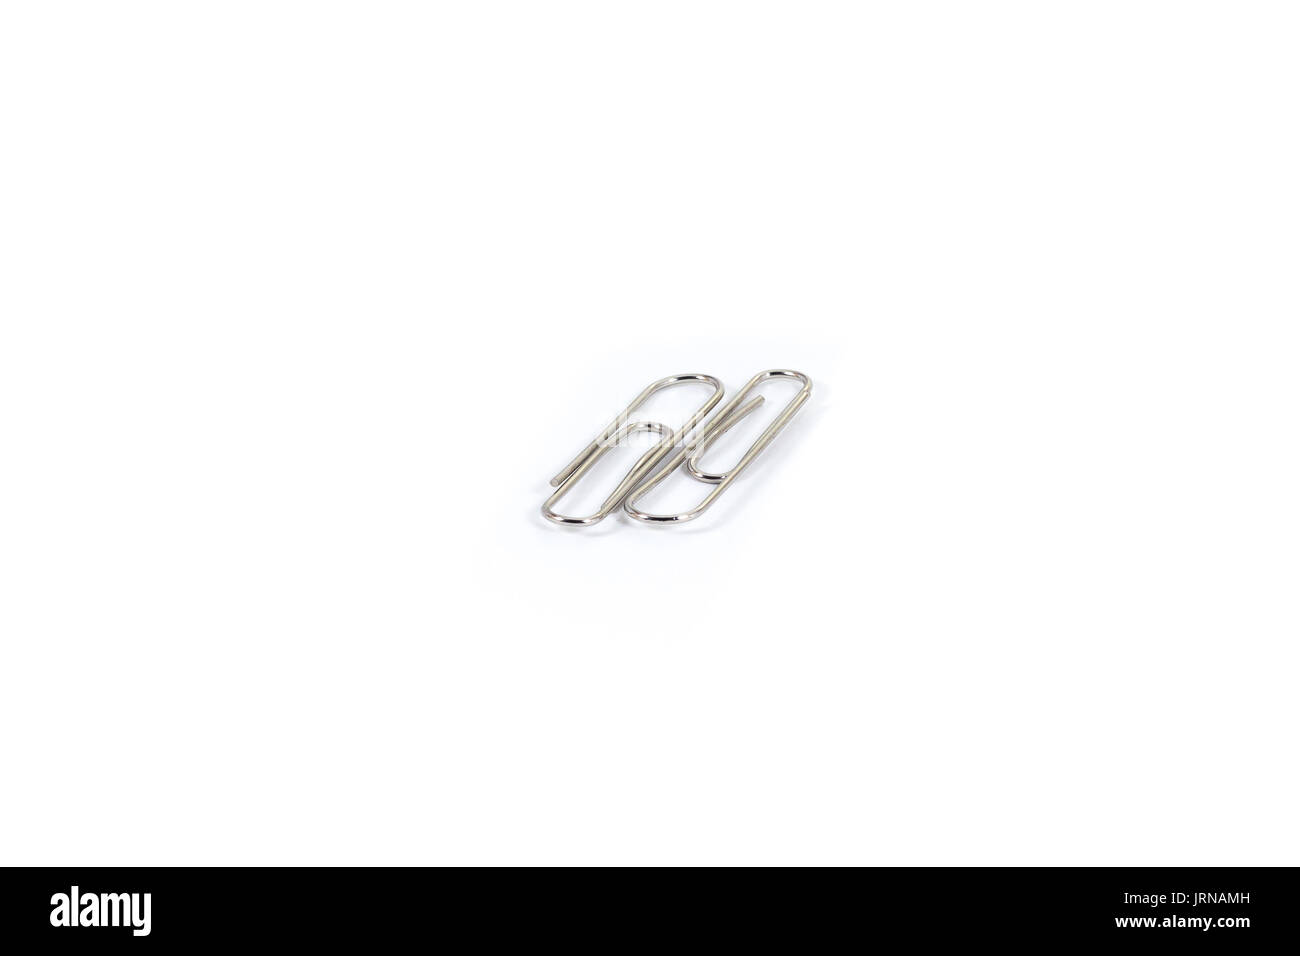 a pile of paper clips on white isolate background - Stock Image